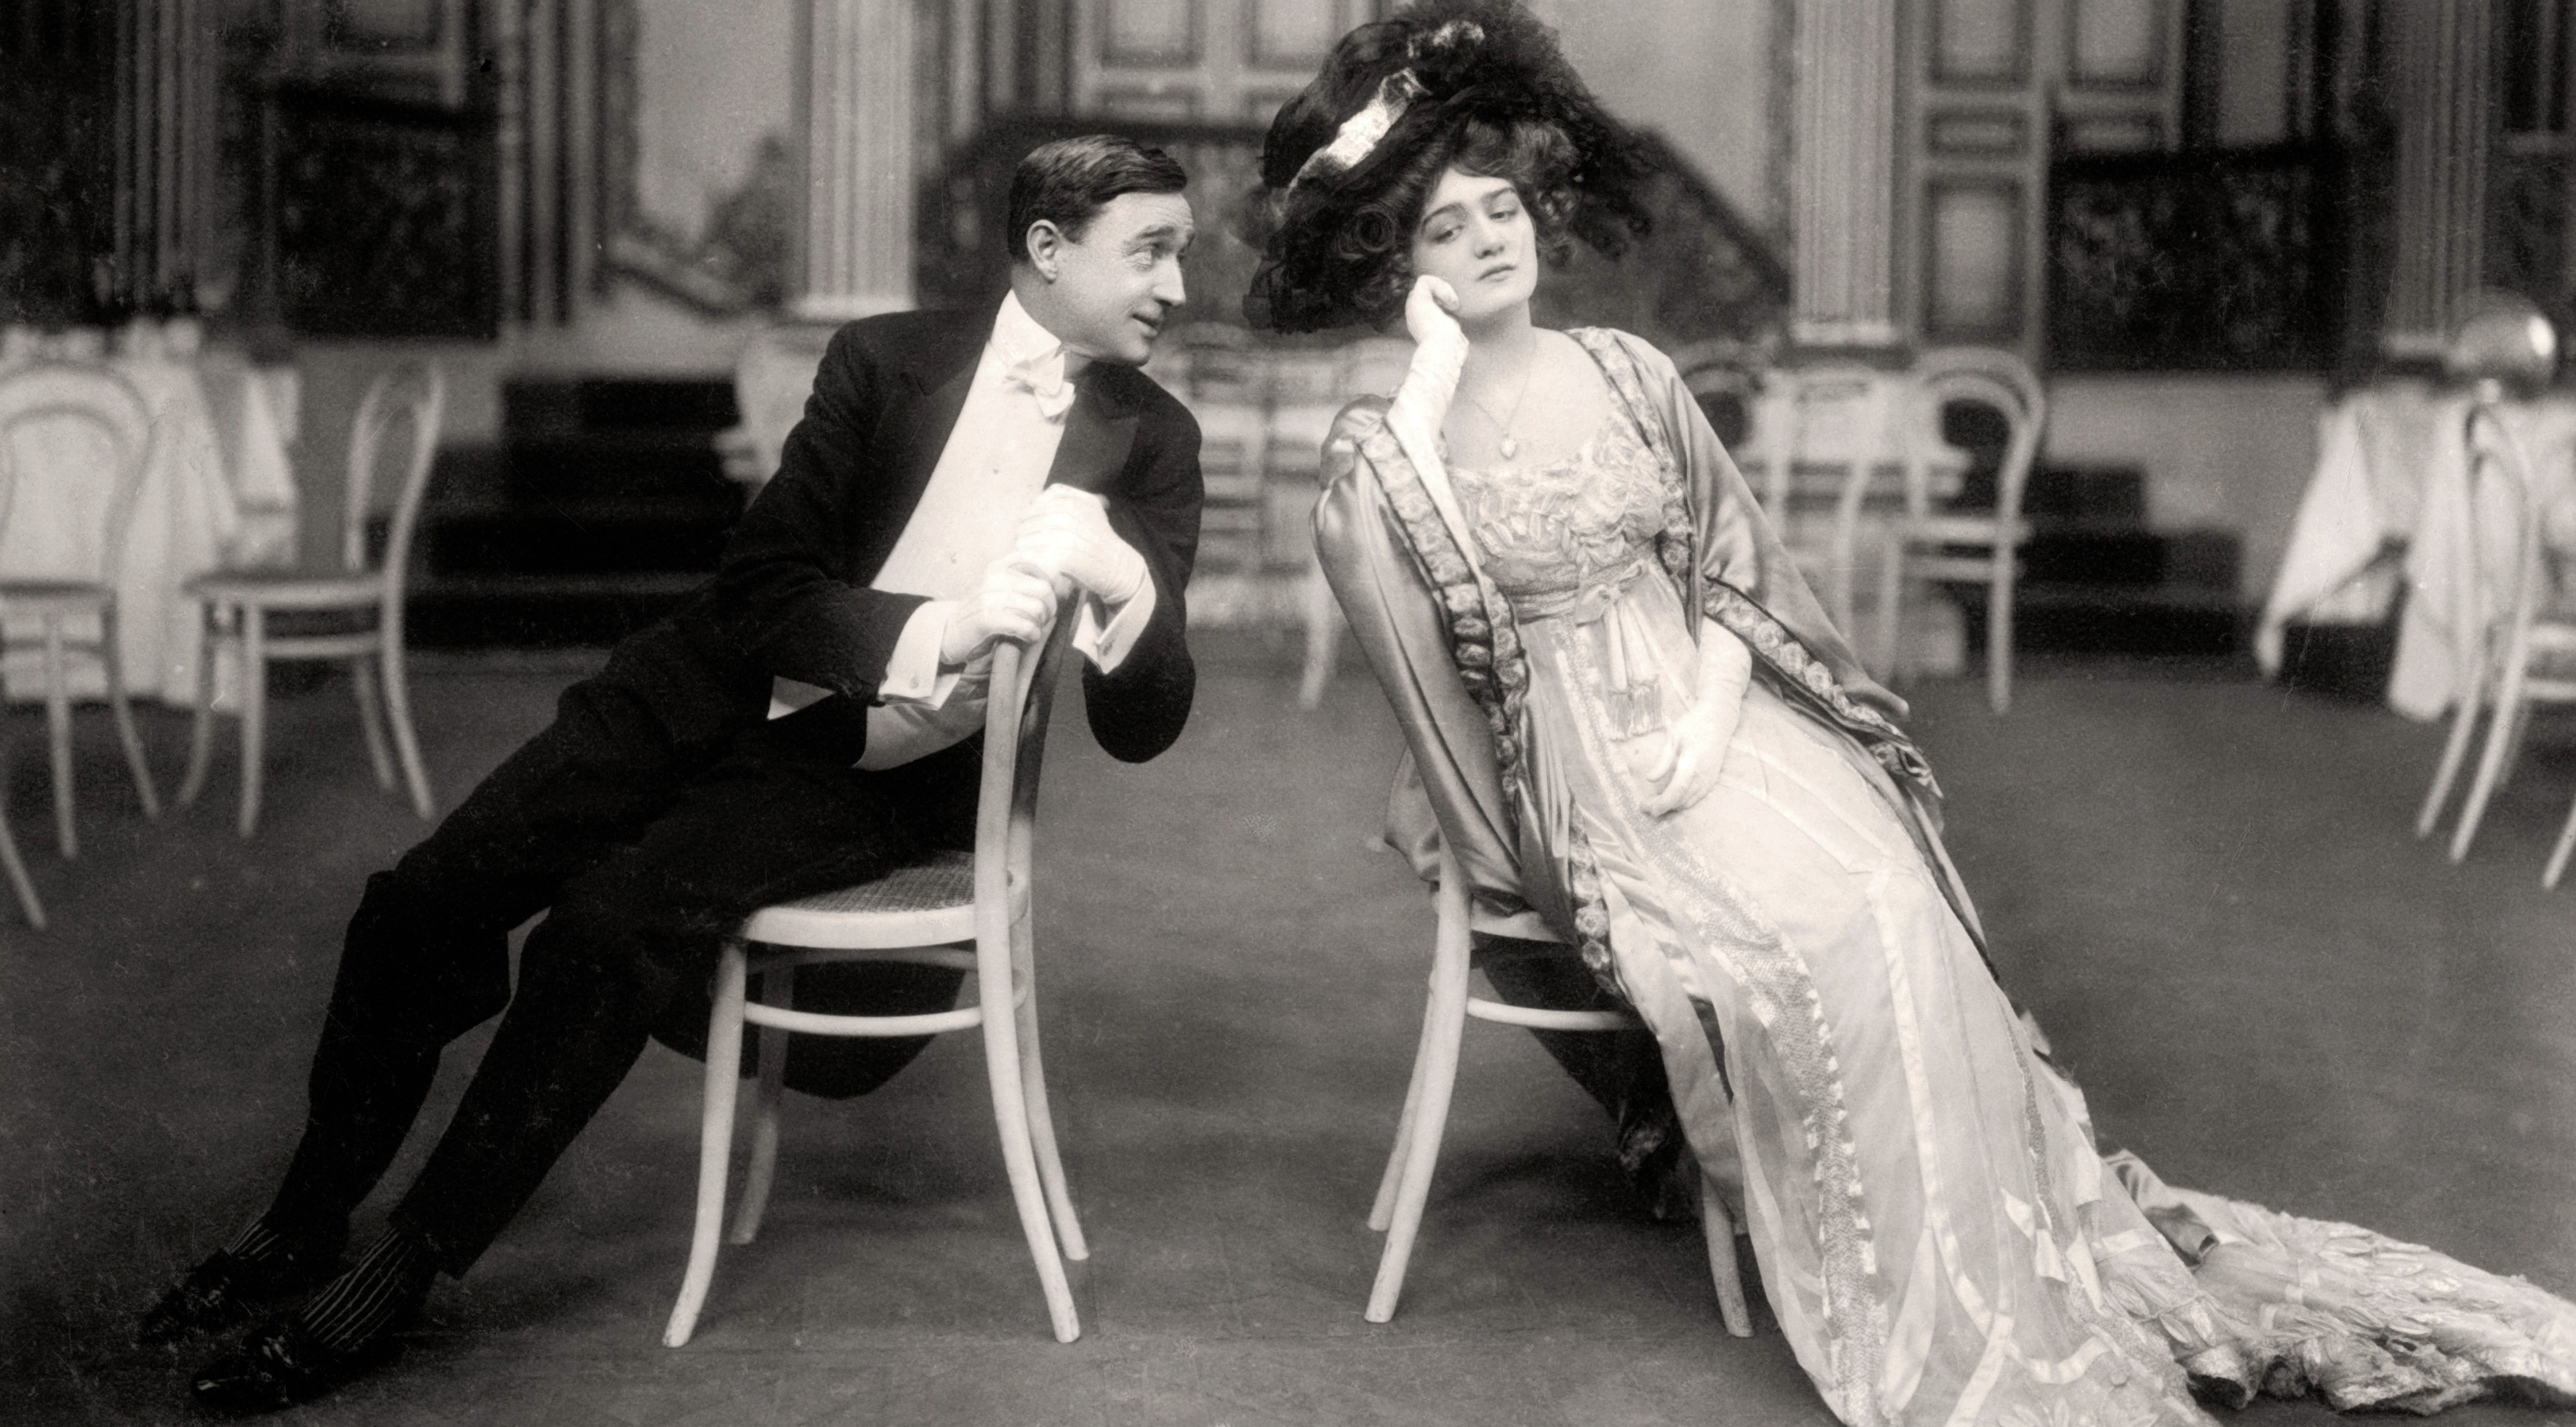 "Lily Elsie and Joseph Coyne in 'The Merry Widow', 1907. Elsie and Coyne are playing the parts of 'Sonia' and 'Prince Danilo' respectively.  Credit: The Print Collector / HIP /TopFoto *** Local Caption *** ""Lily Elsie and Joseph Coyne in 'The Merry Widow', 1907."""